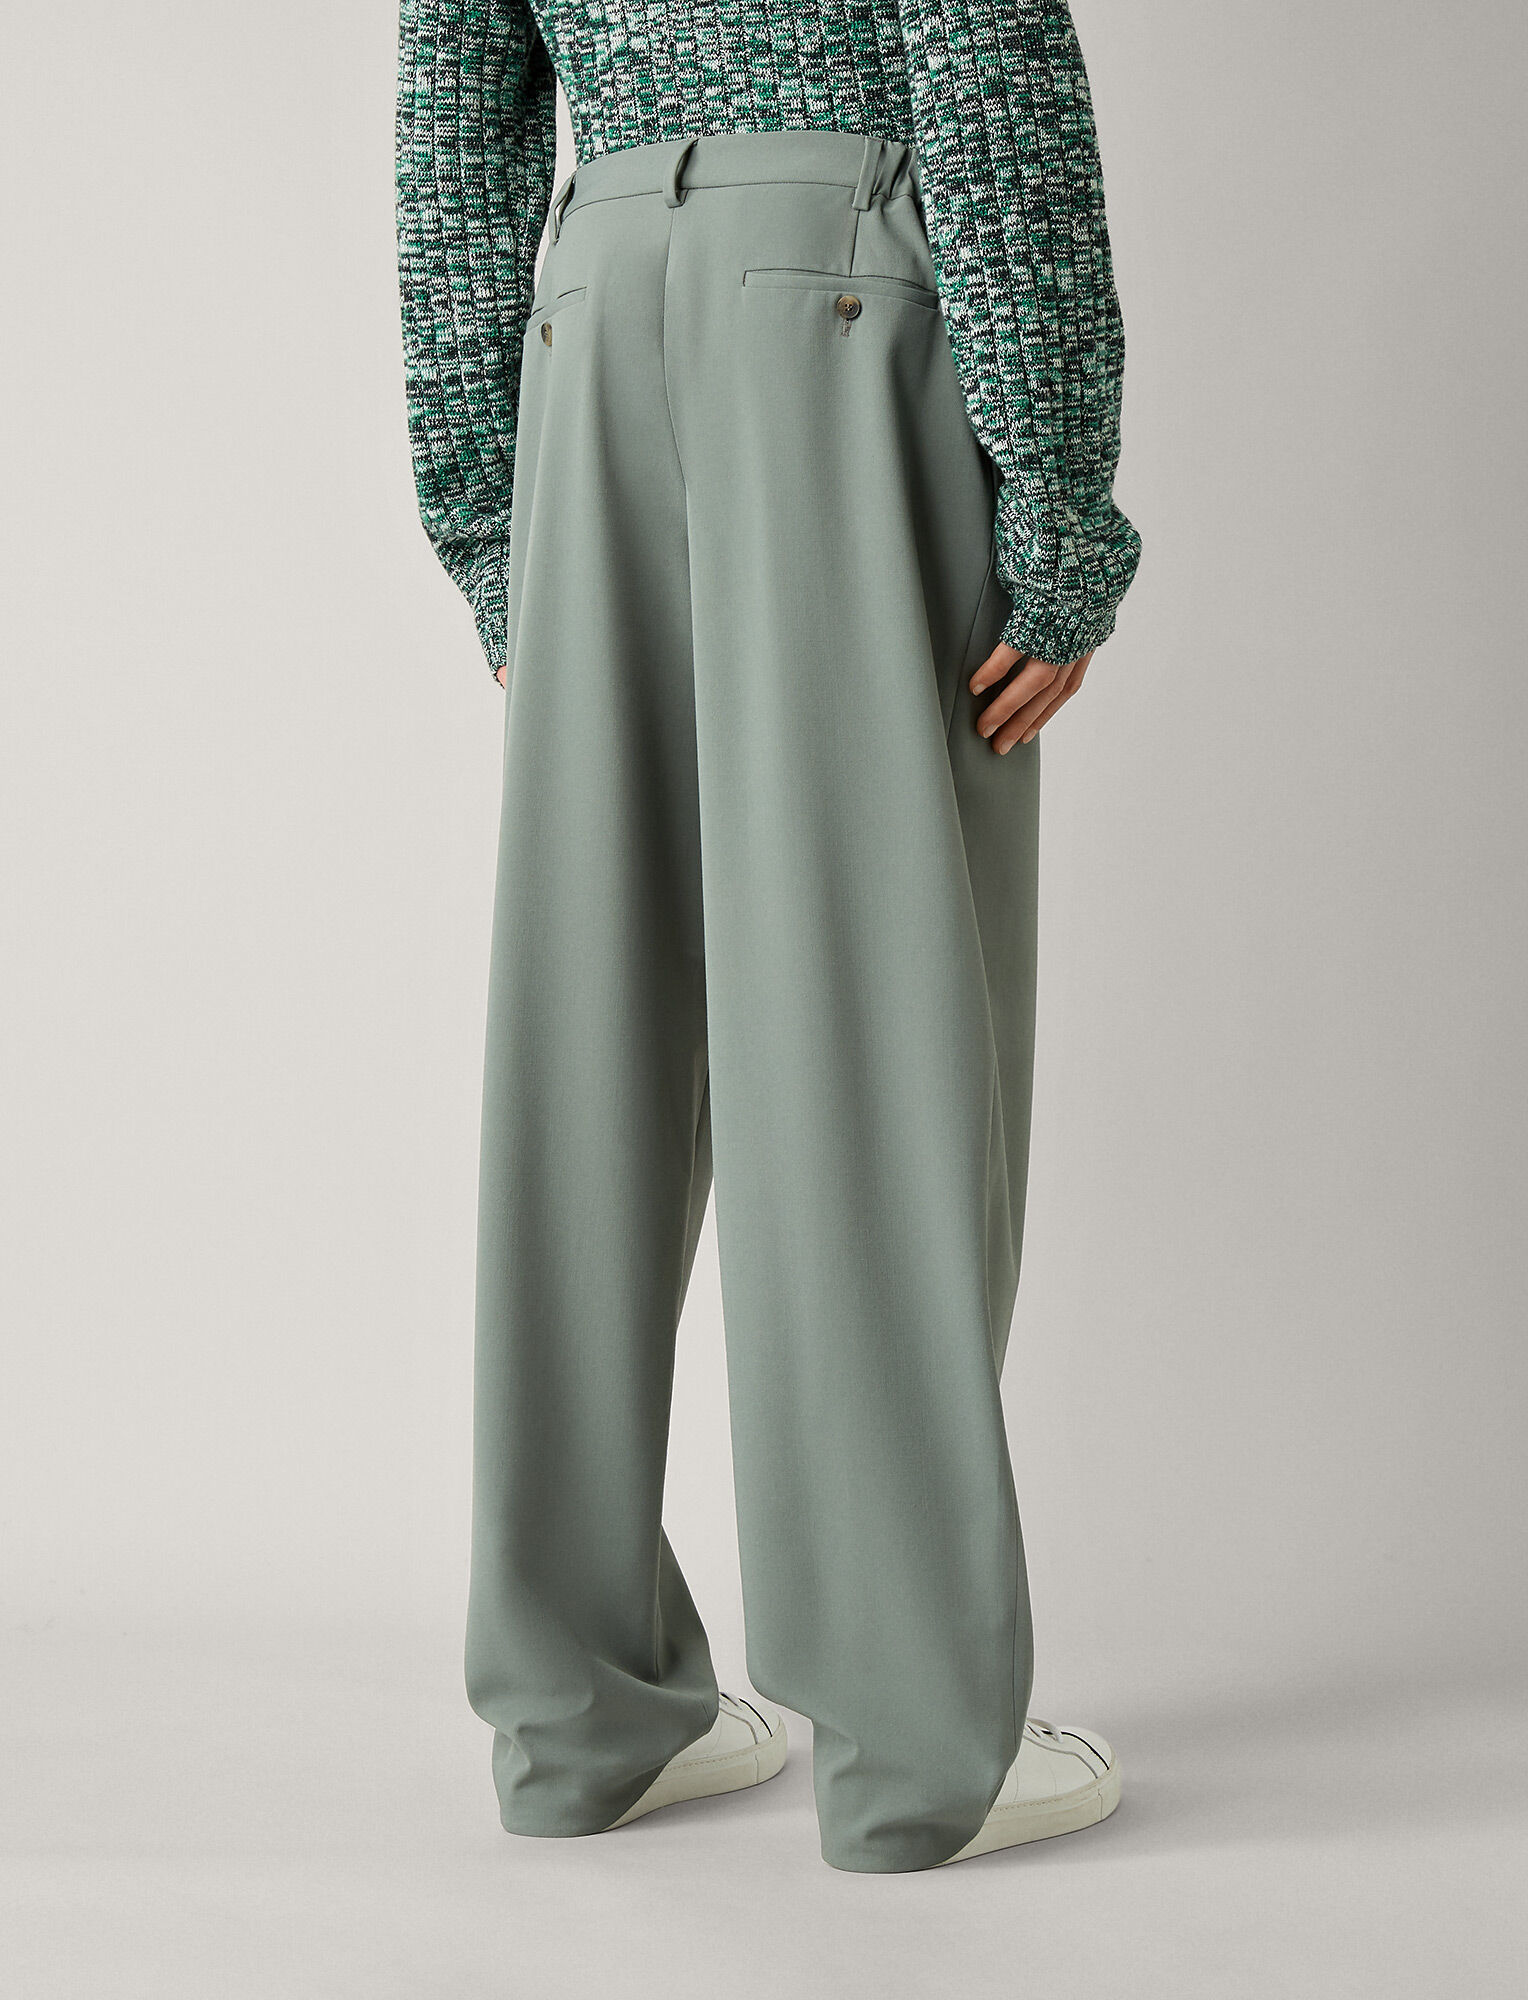 Joseph, Byrne Techno Wool Stretch Trousers, in SAGE